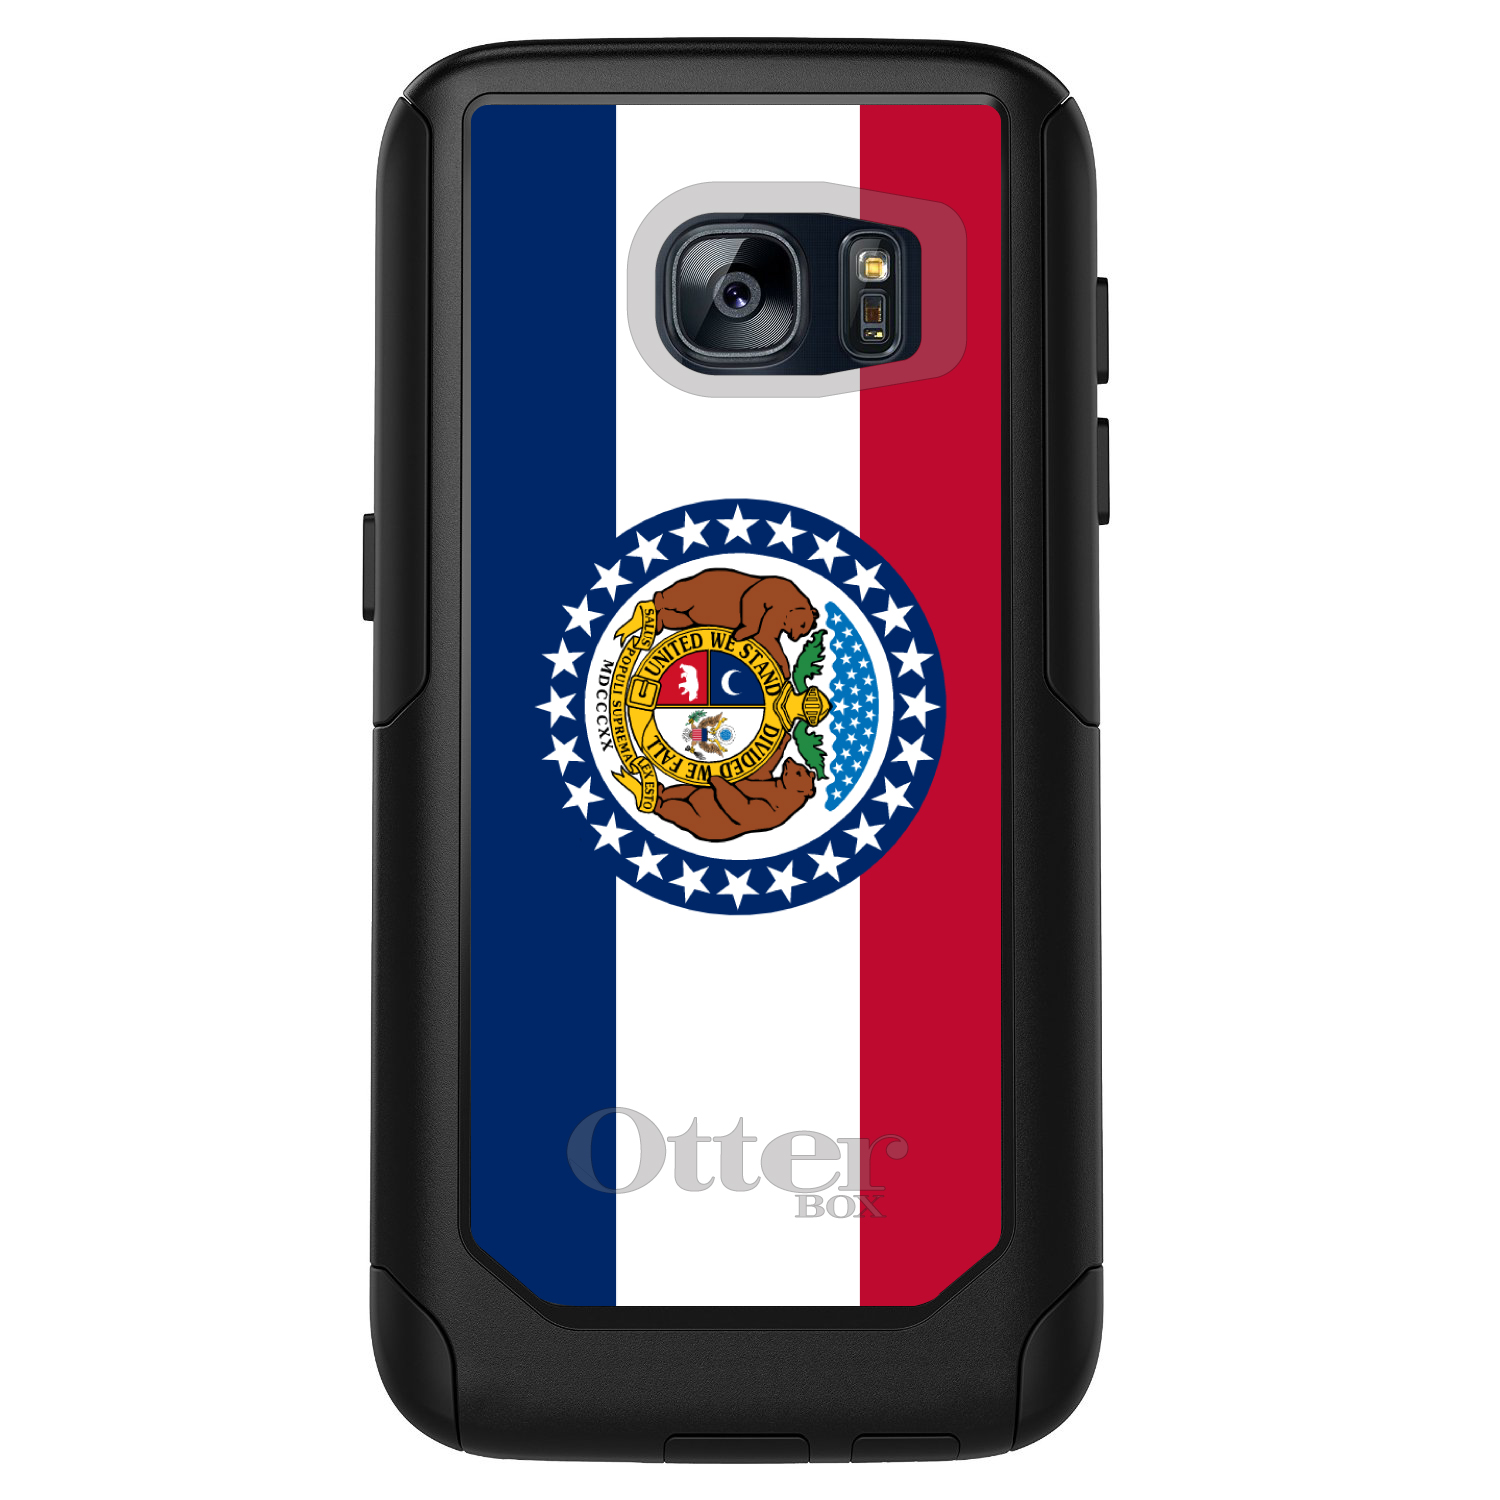 CUSTOM Black OtterBox Commuter Series Case for Samsung Galaxy S7 - Missouri State Flag